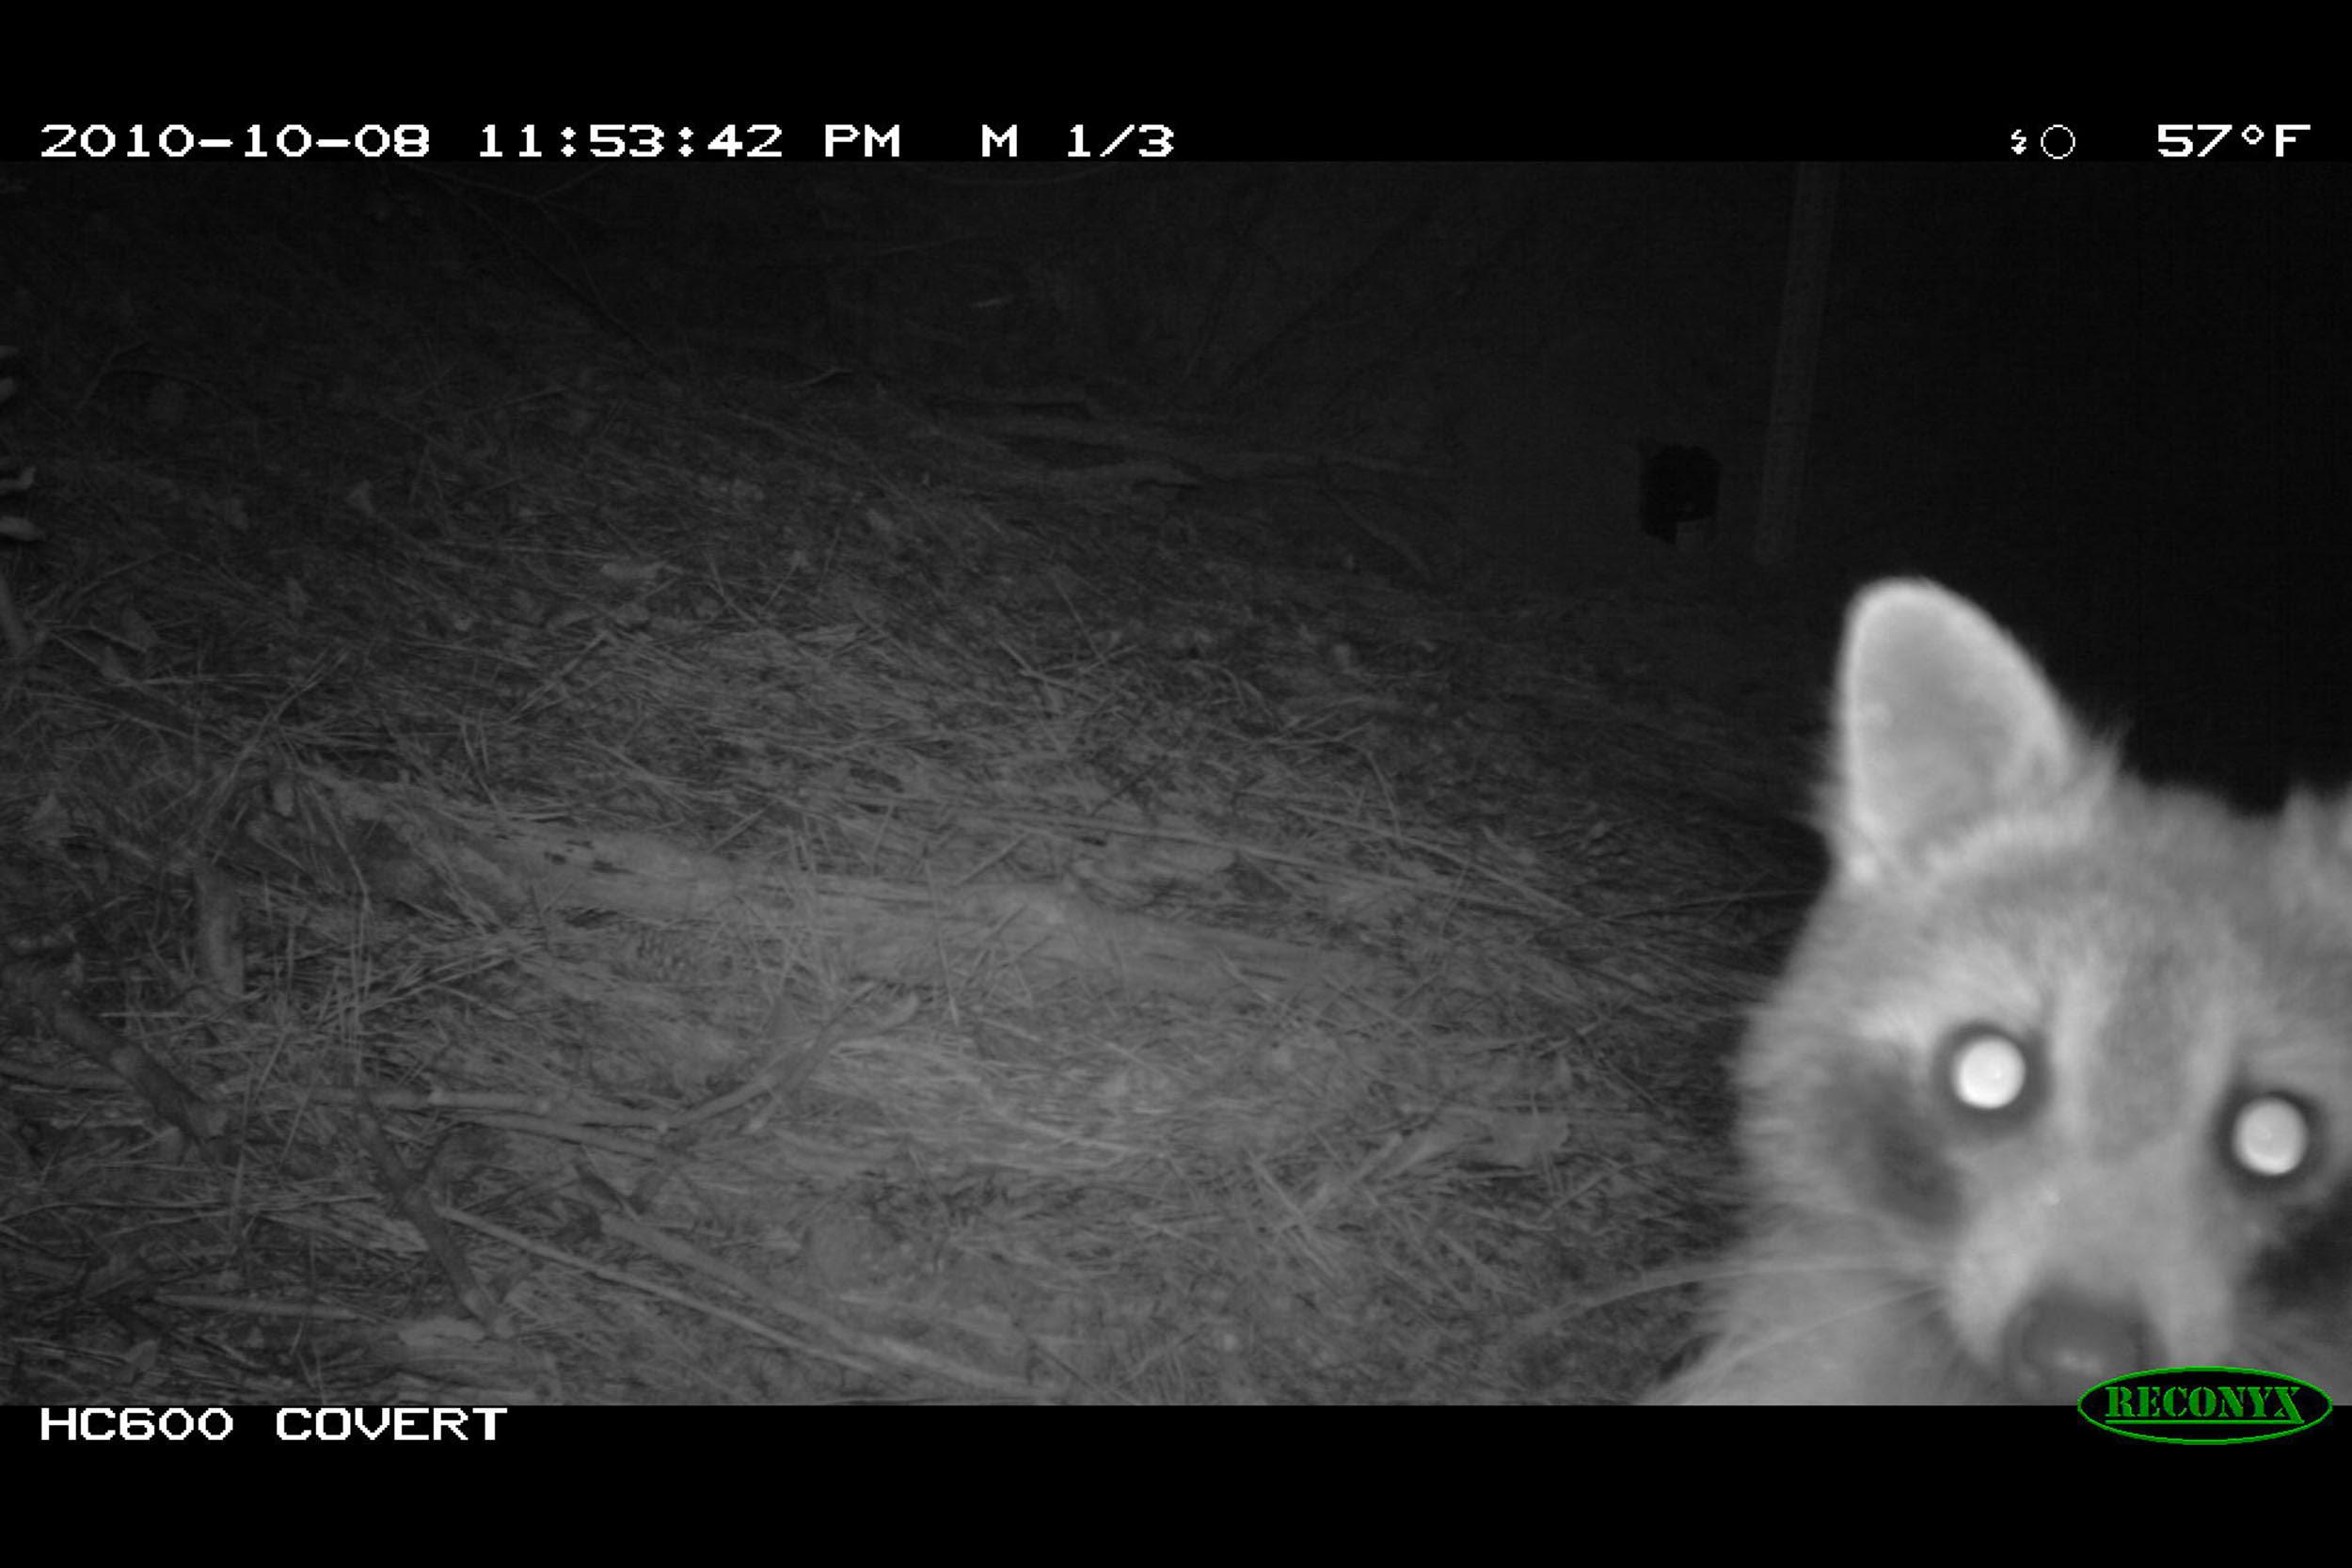 Raccoon (Procyon lotor) - Images captured with a game camera show that the wooded area within the development site provided habitat that supports numerous mammalian and avian wildlife.